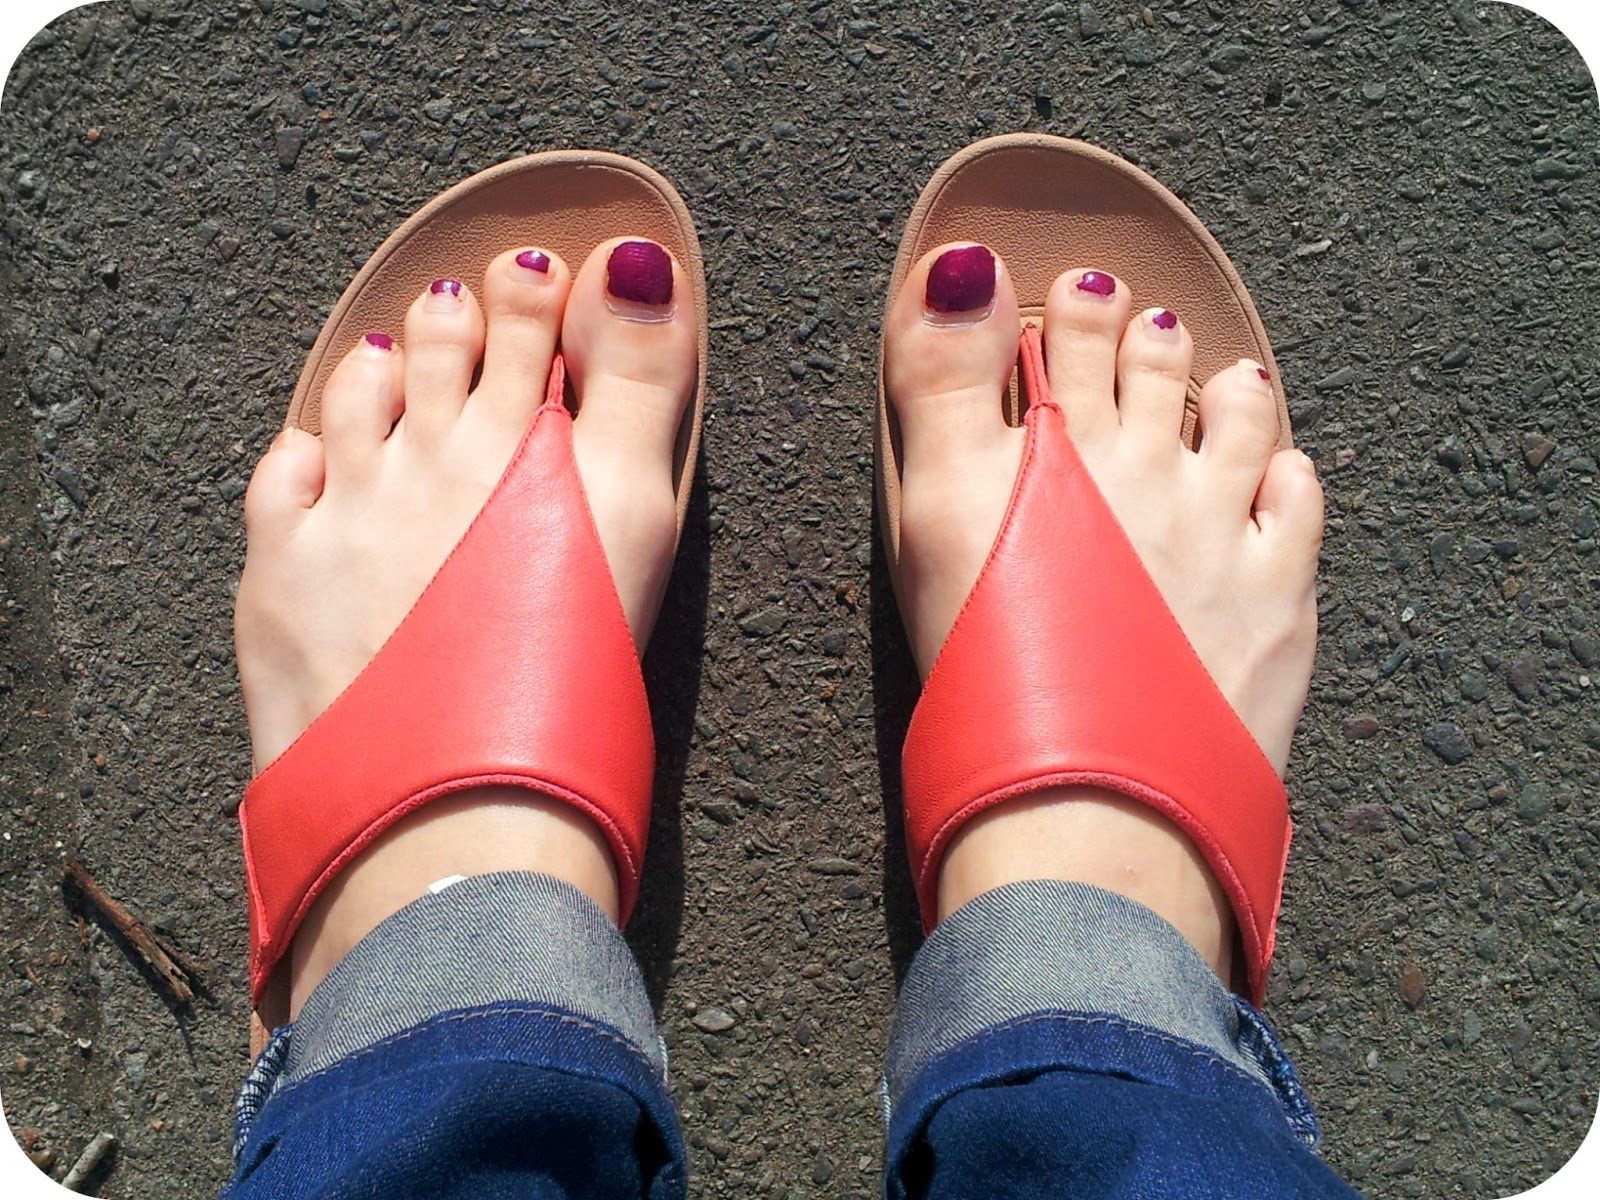 Think, that painted toenails and flip flops